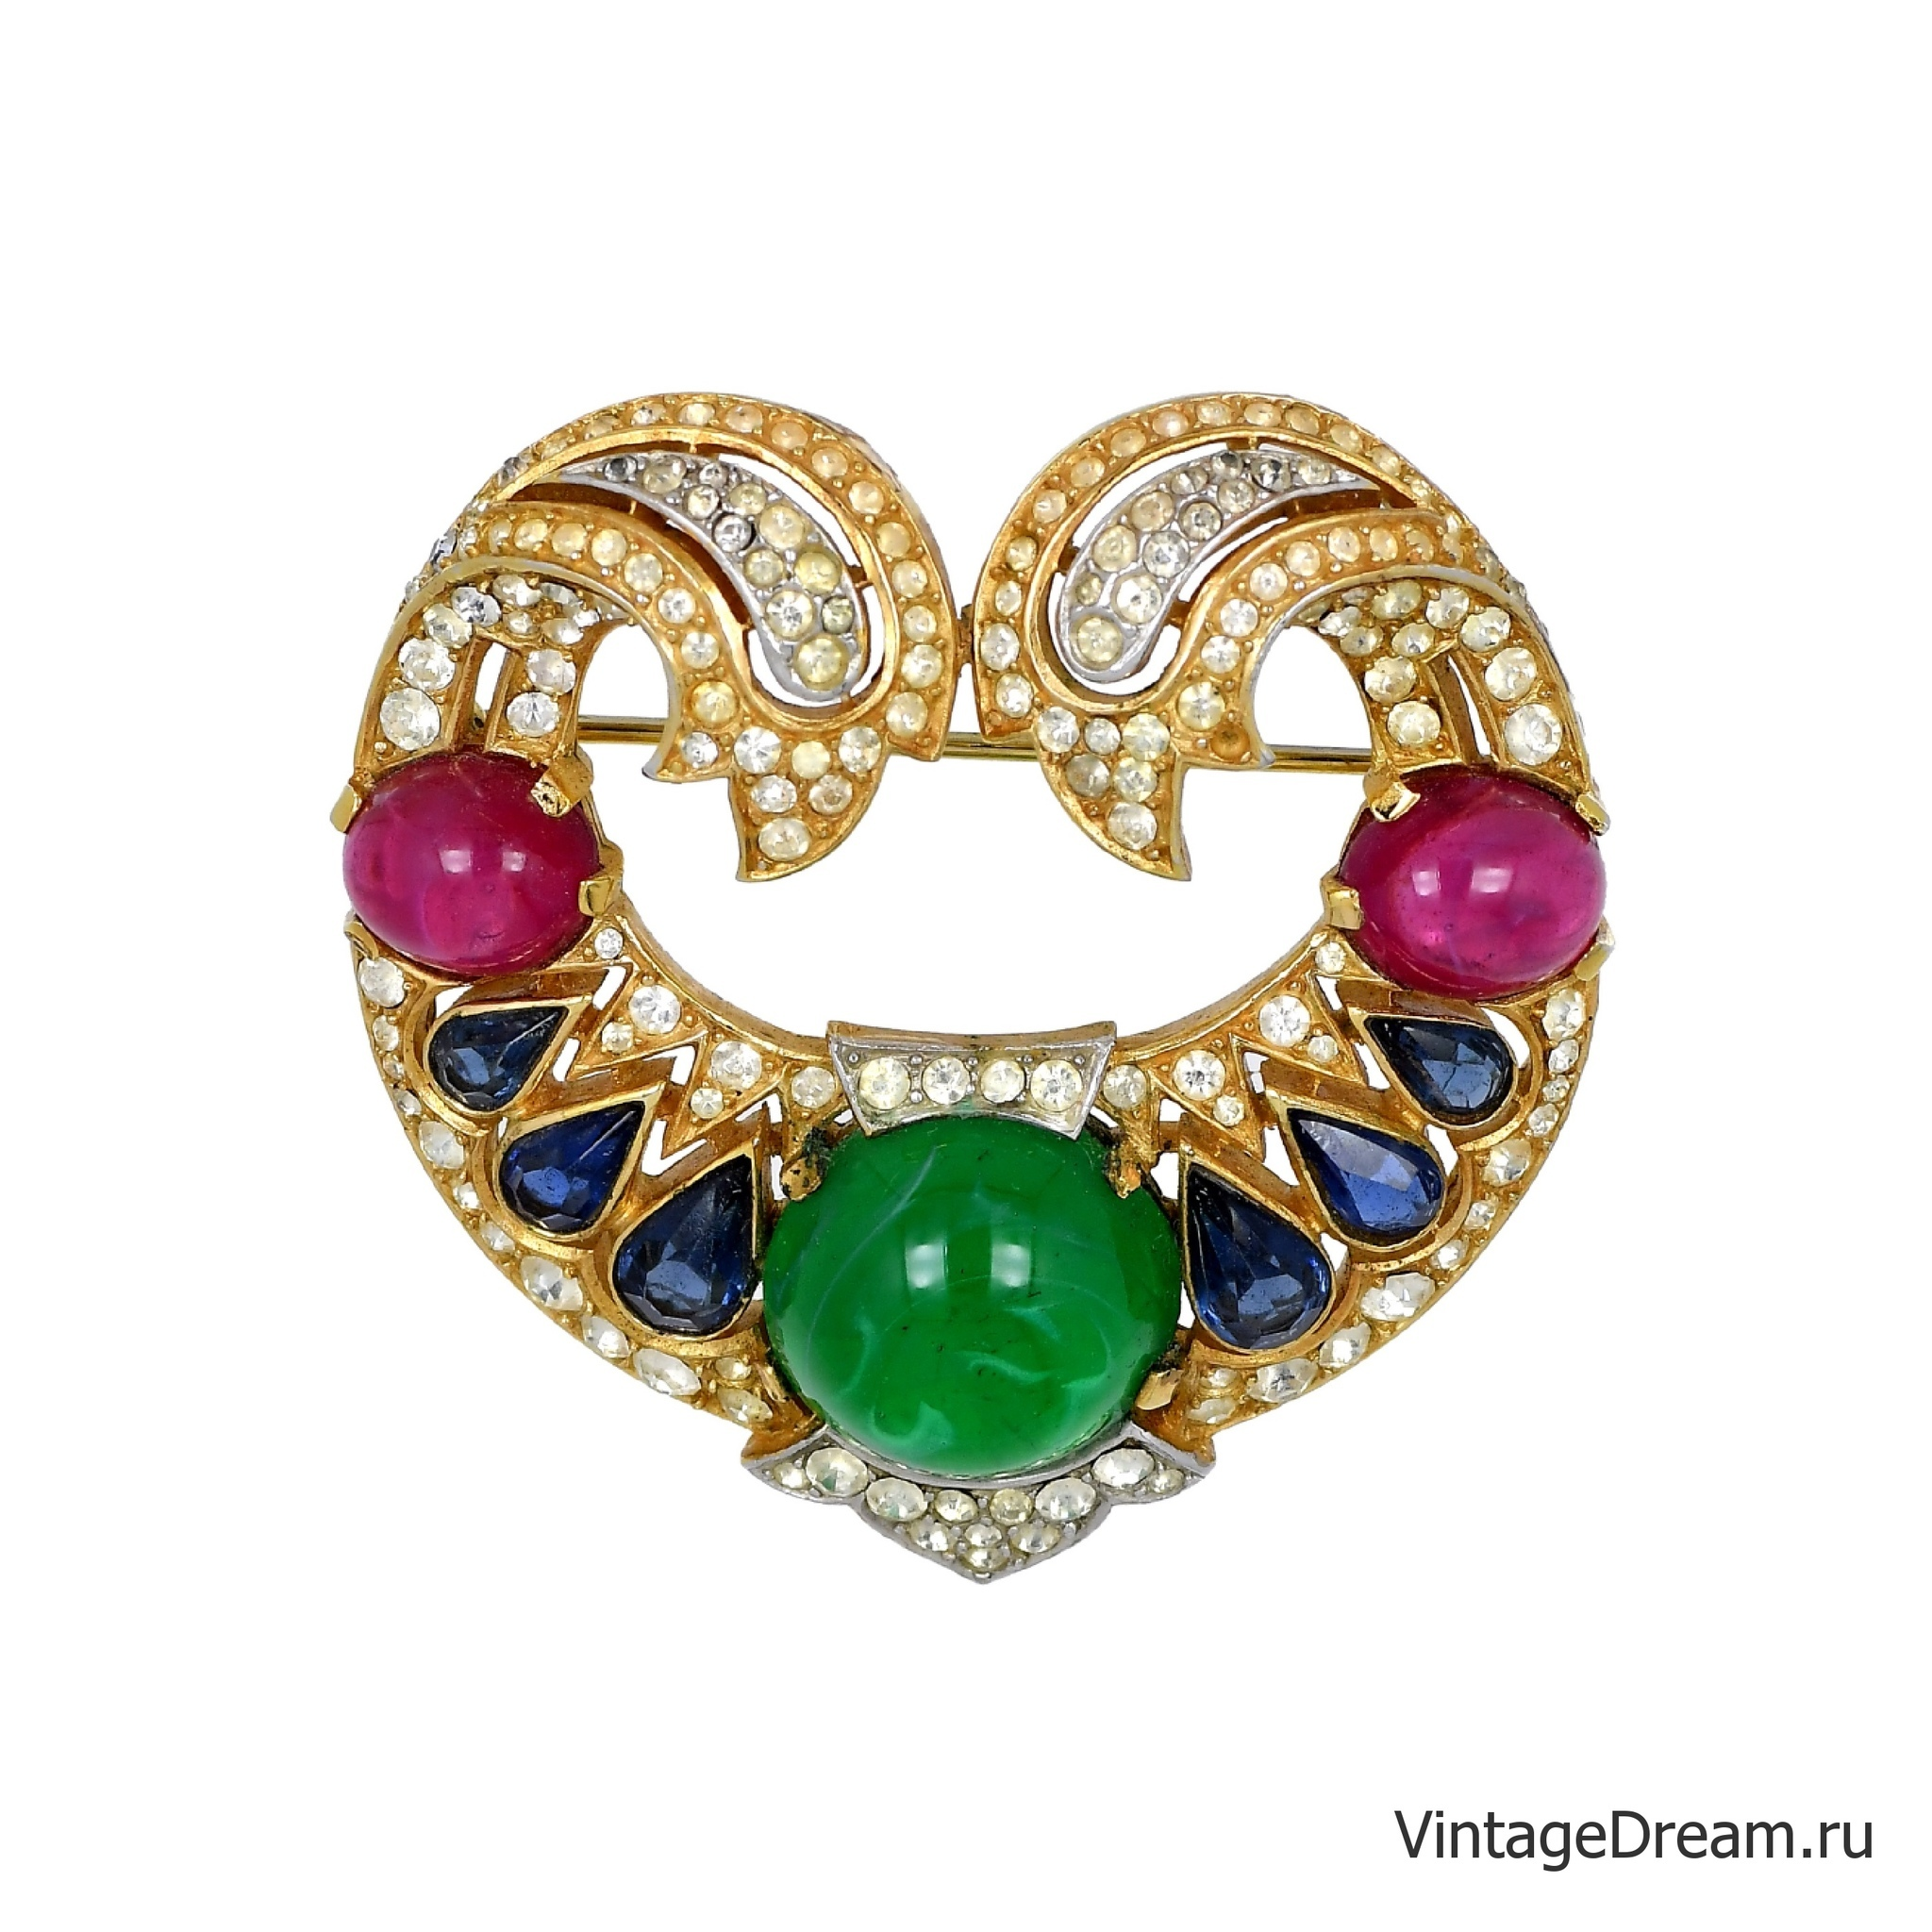 Trifari brooch from the 1965 Jewels of India collection